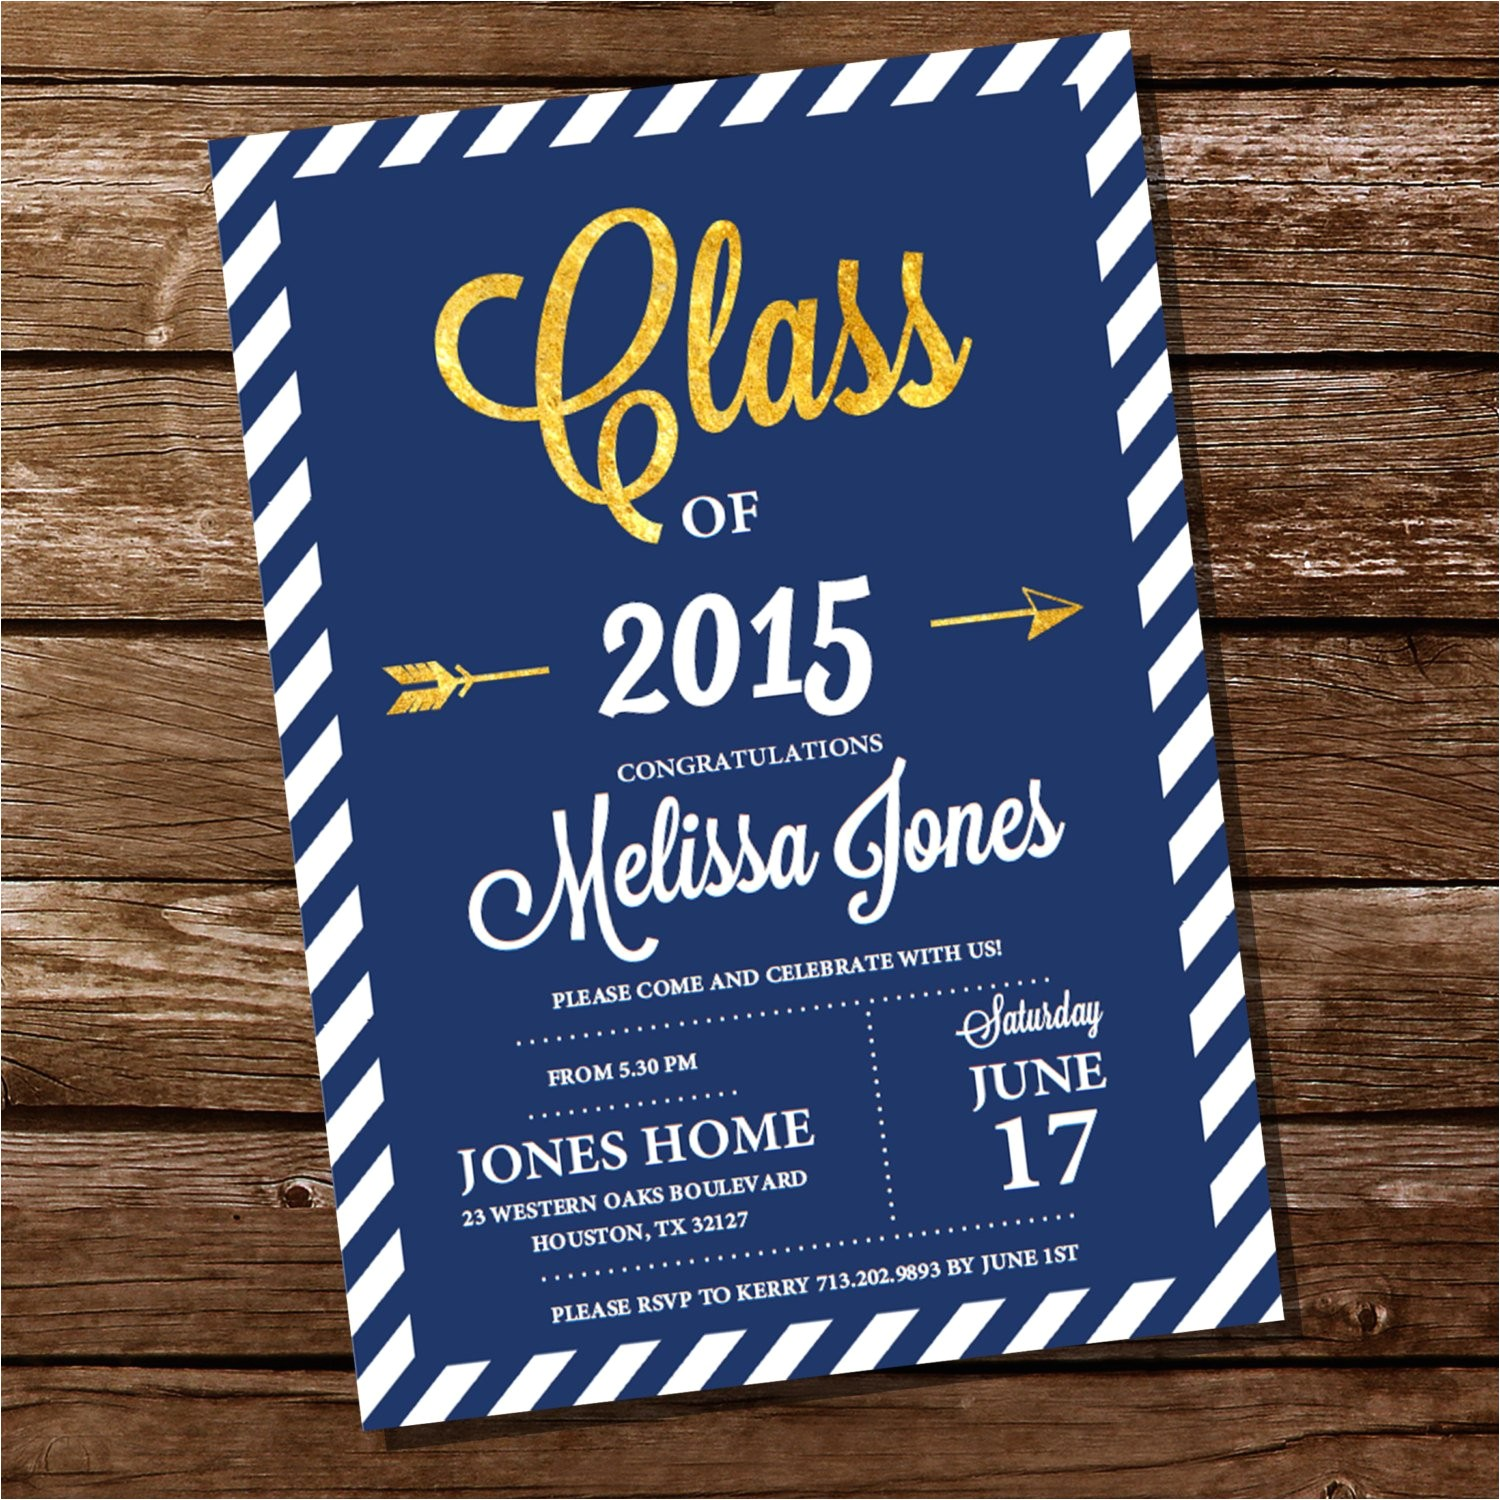 Blue and Gold Graduation Invitations Navy Blue and Gold Graduation Invitation Gold Graduation